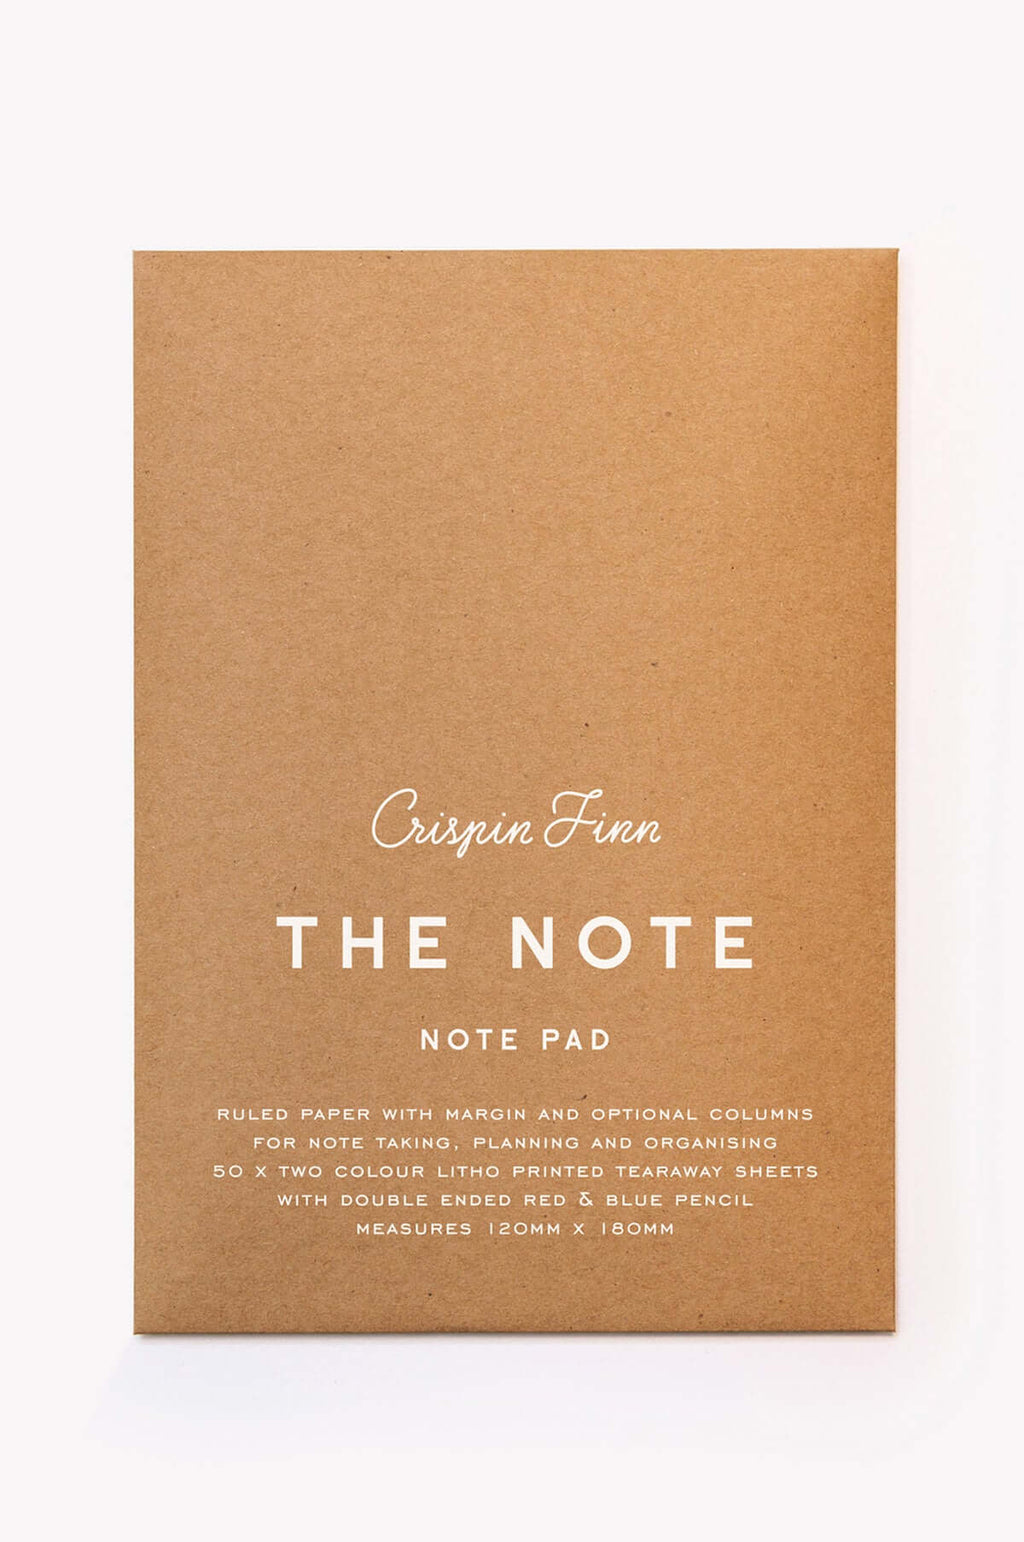 The Note Pad